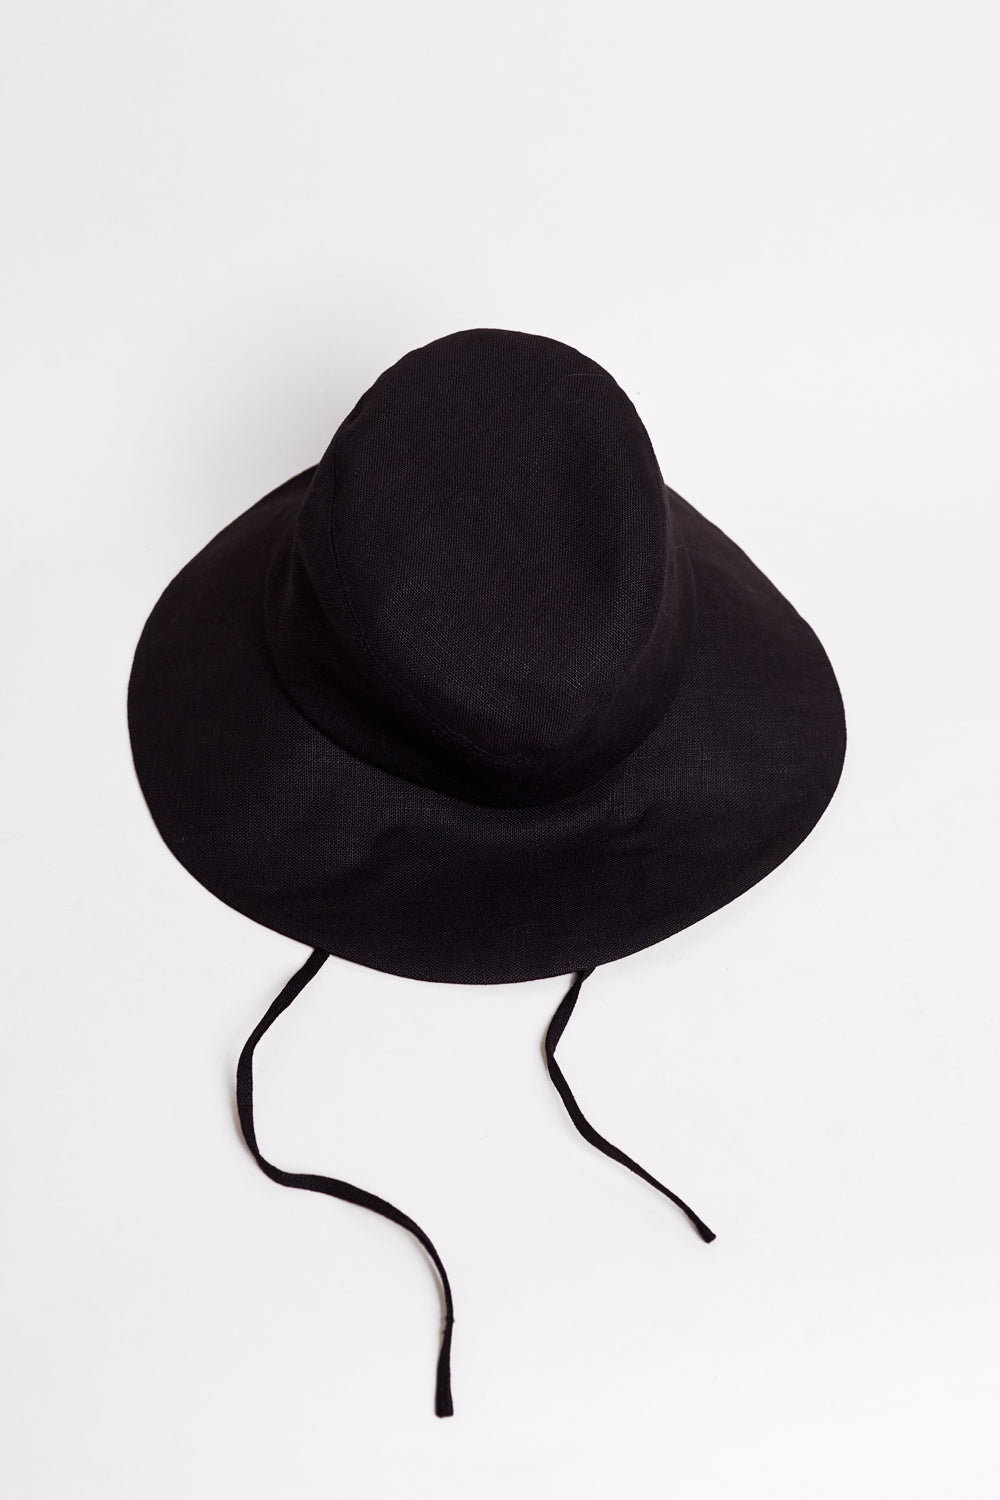 Clyde Fisherman Hat in Black - Vert & Vogue